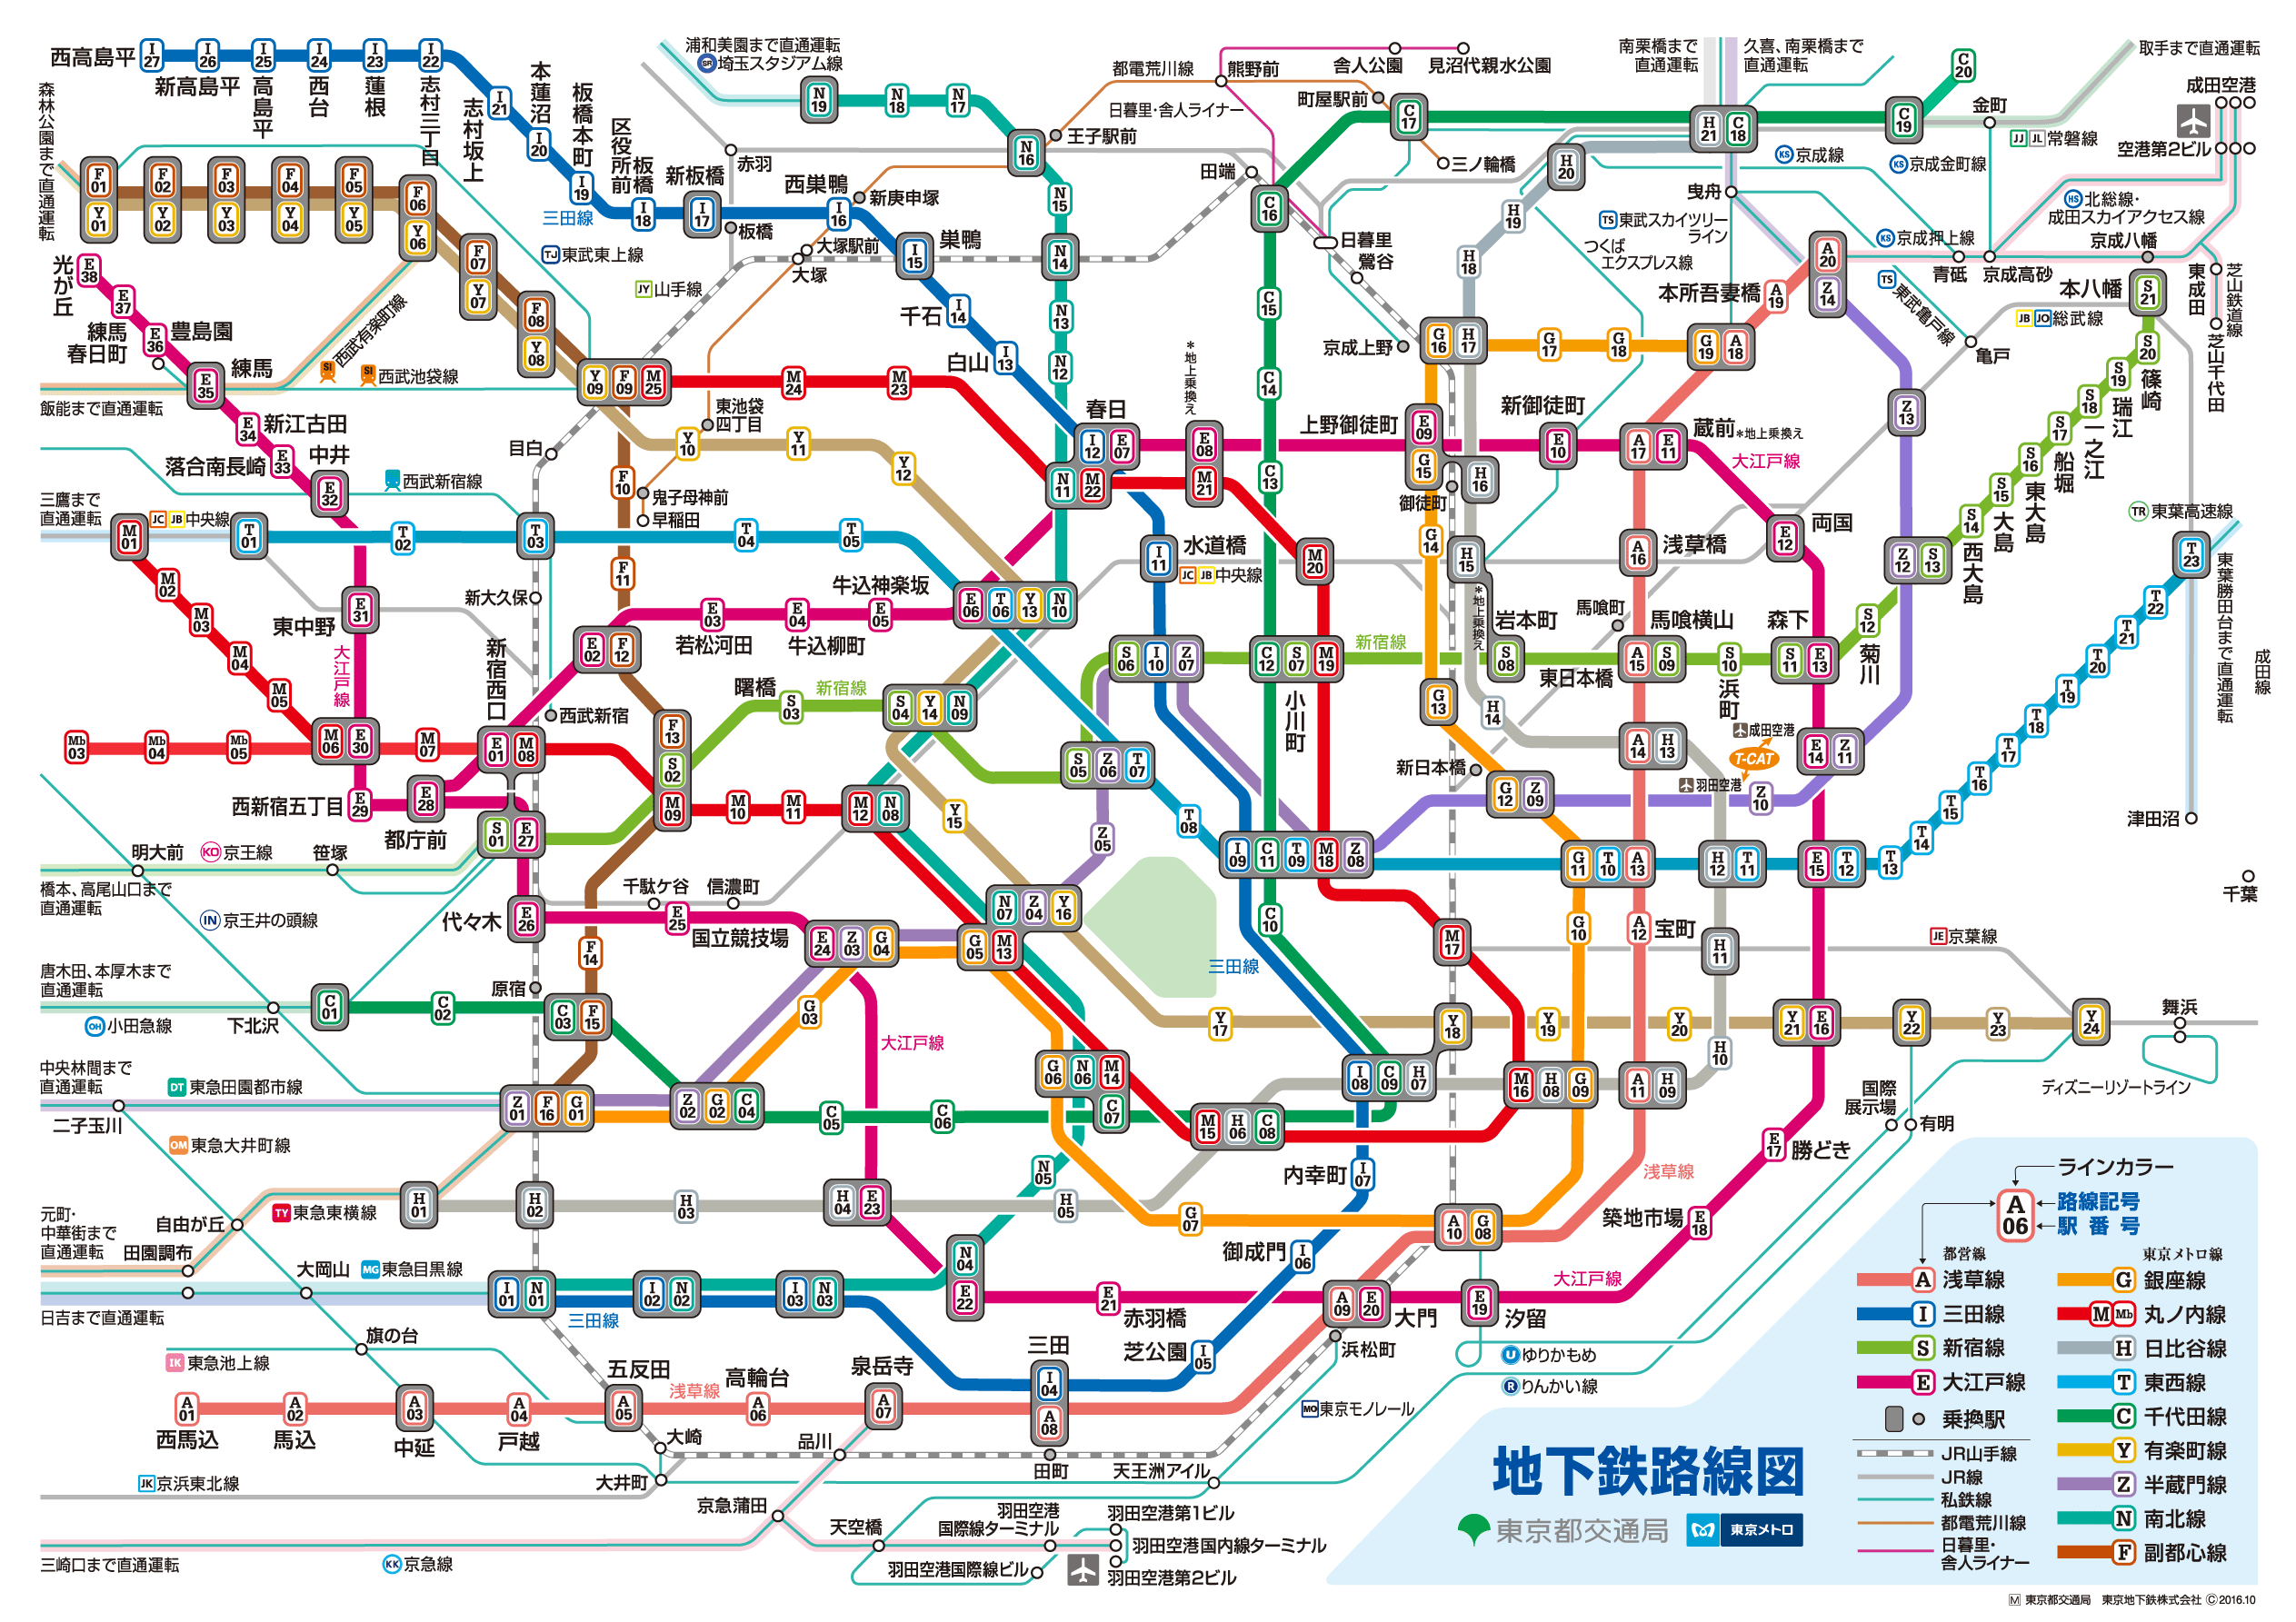 4 steps to get on a local train without knowing how to buy a ticket and railway route chart in Japan